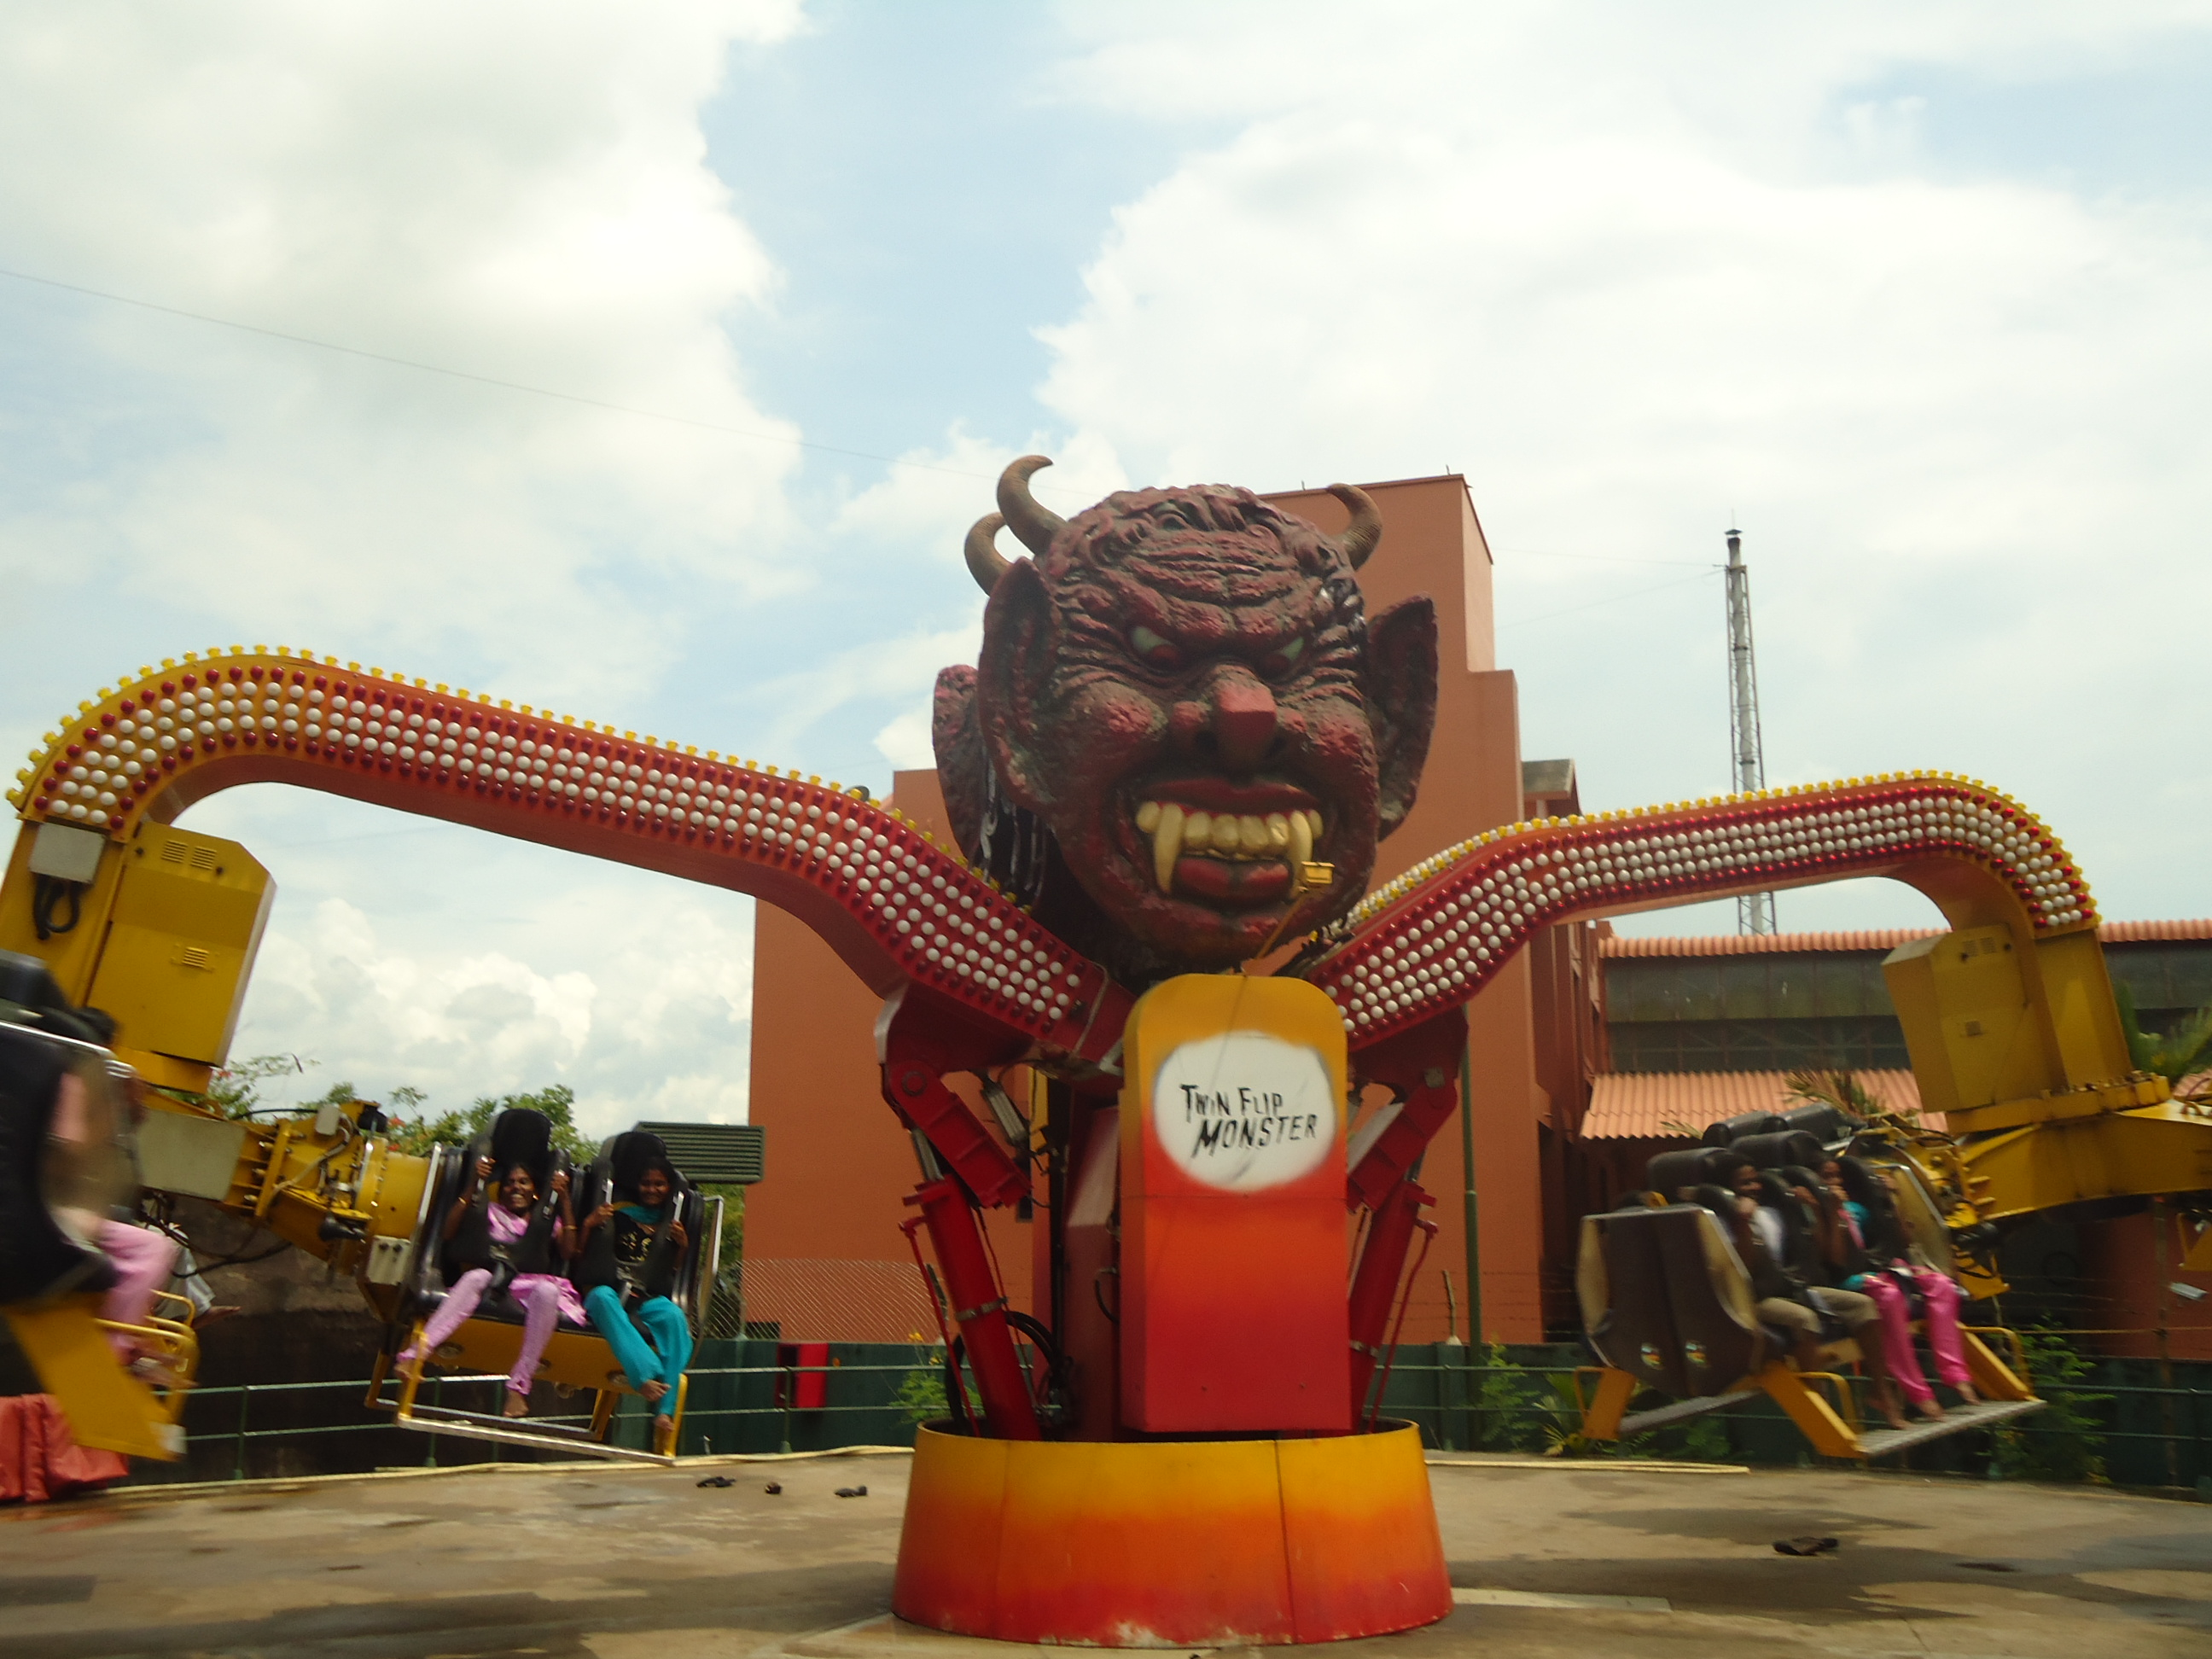 the monster ride